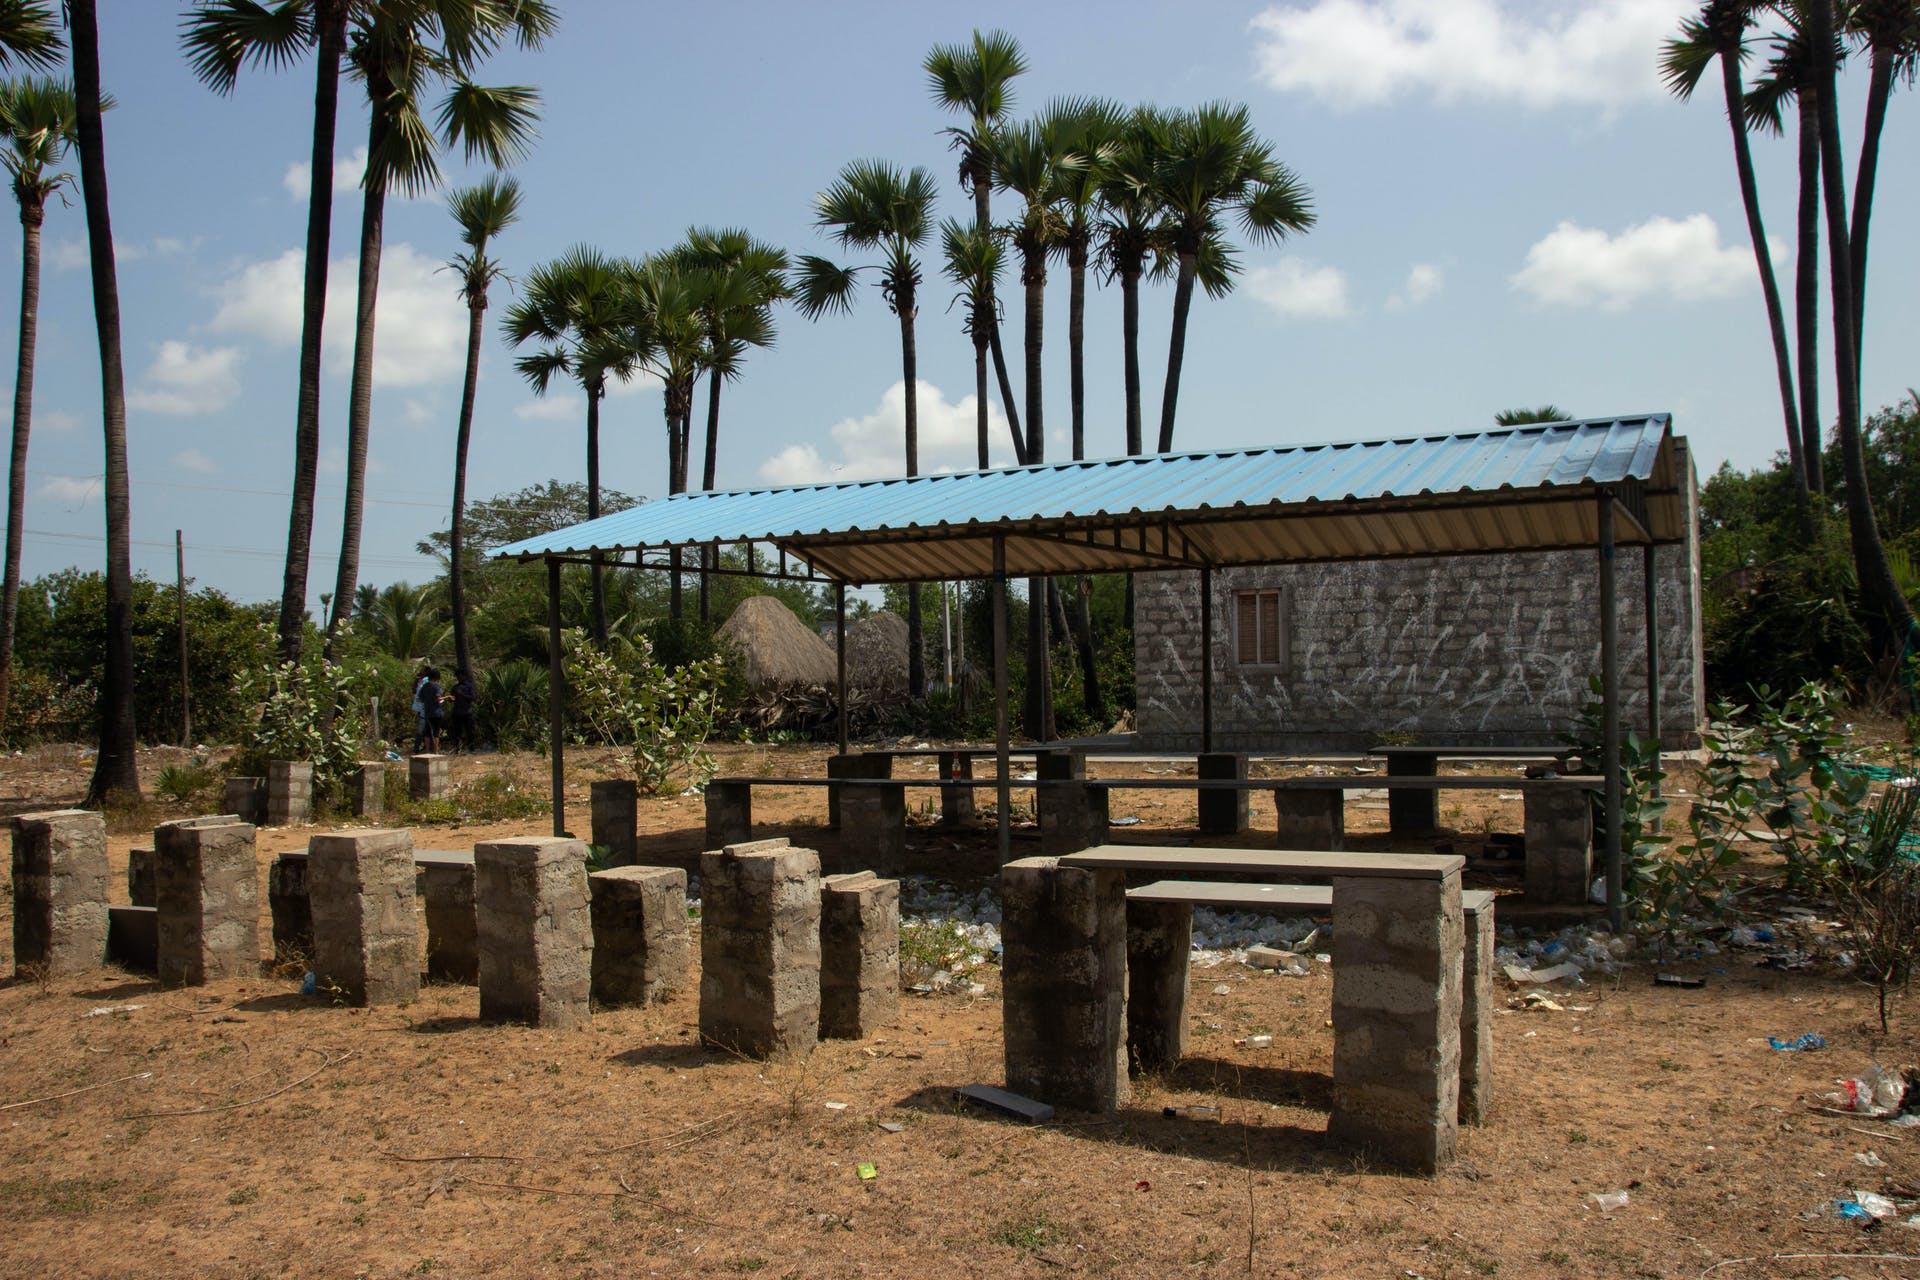 Abandoned benches and bottles mark the site of a shuttered liquor store in Kappaladoddi. Photo by Justin Nisly.